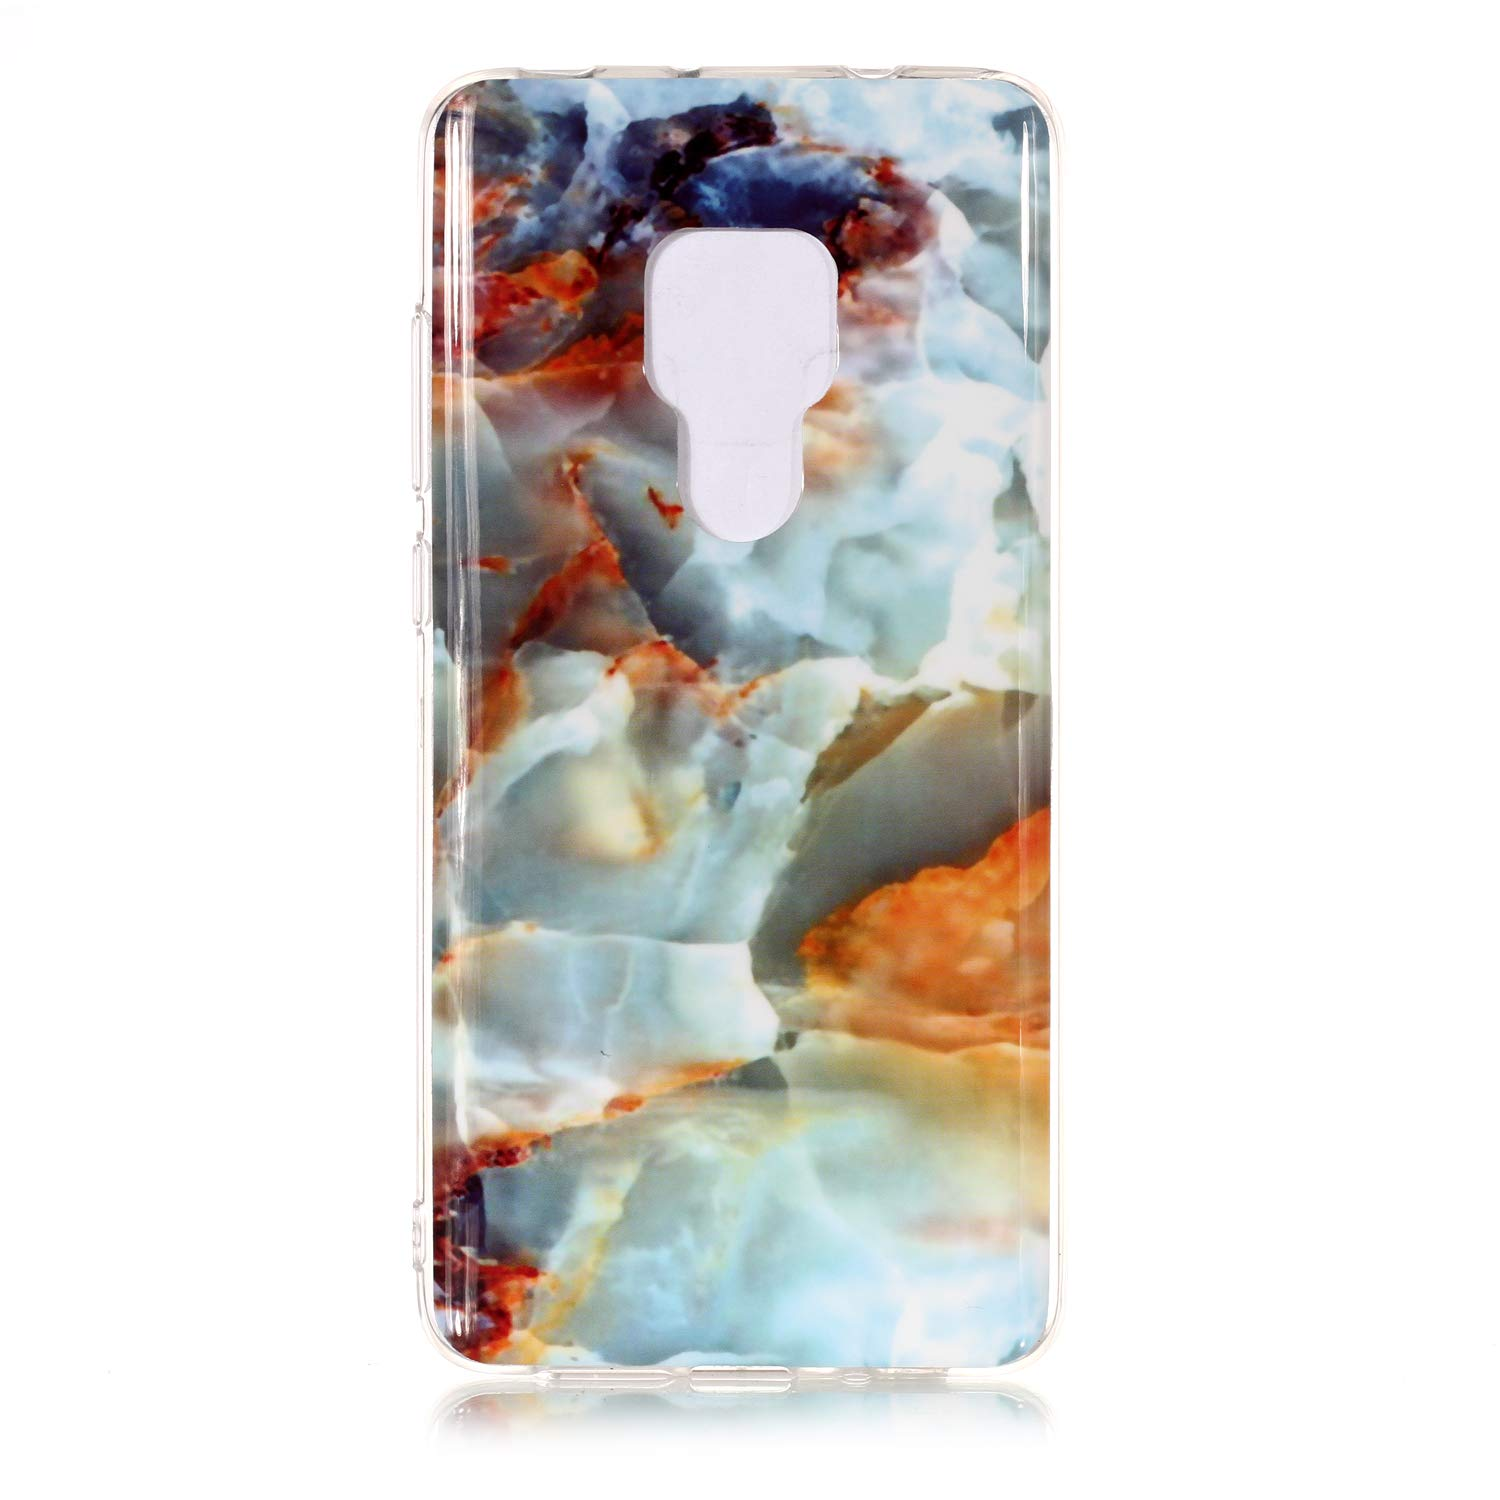 for Huawei Mate 20 Marble Case with Screen Protector,Unique Pattern Design Skin Ultra Thin Slim Fit Soft Gel Silicone Case,QFFUN Shockproof Anti-Scratch Protective Back Cover - Fire Cloud by QFFUN (Image #2)